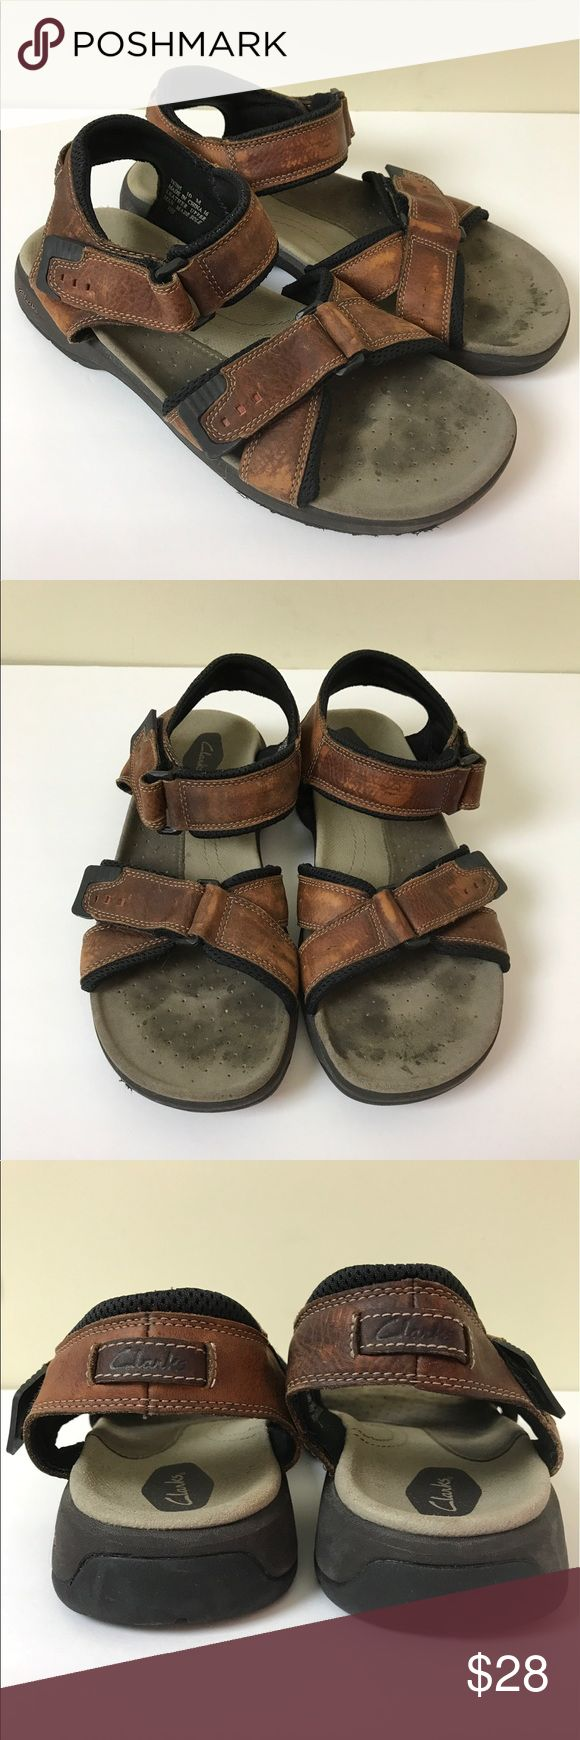 Men's Clarks Sandals Size 10 Clarks Men's sandals with adjustable Velcro straps for a perfect fit. Some fading on the leather, but it doesn't affect the integrity of the shoe. They look more worn than they really are. Clarks Shoes Sandals & Flip-Flops